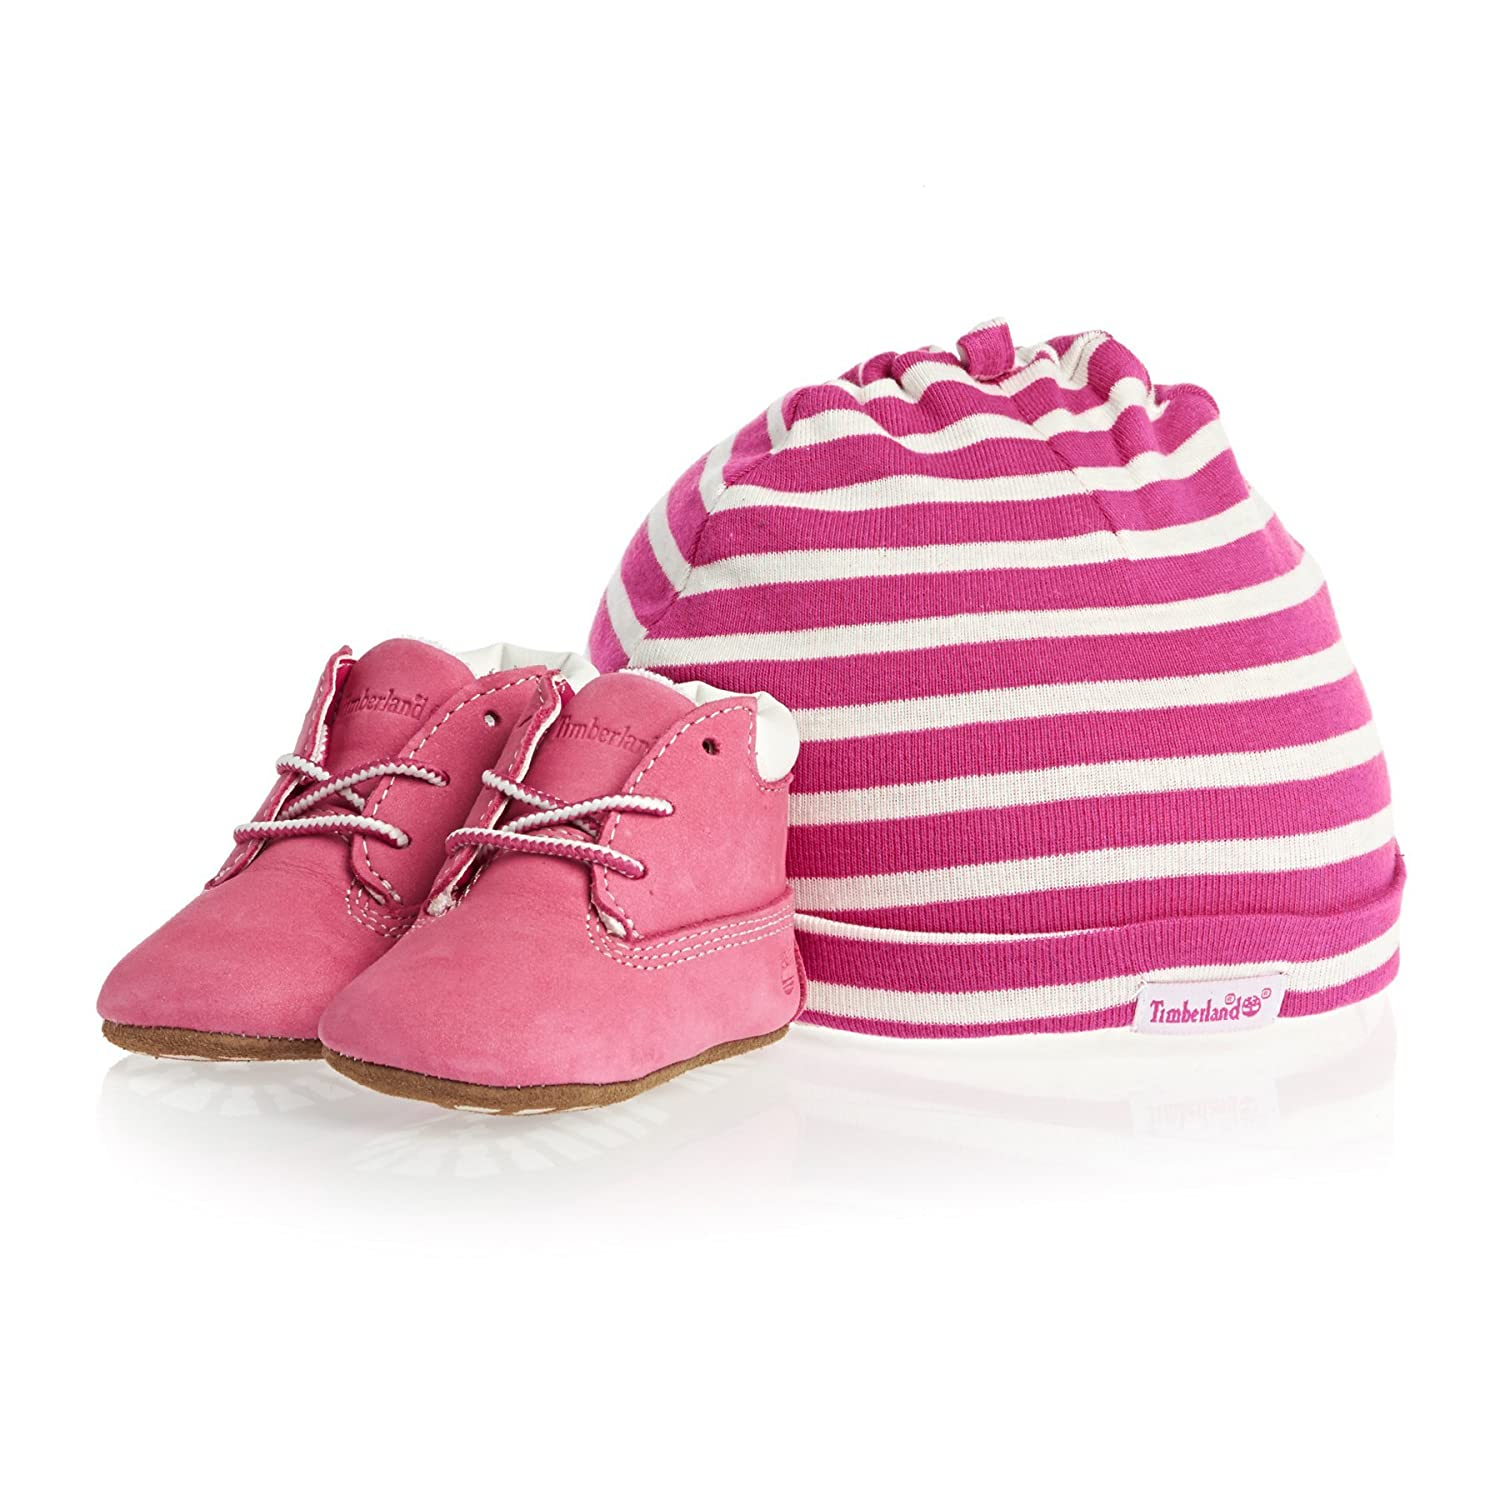 Timberland Unisex Babies' Crib Bootie with Hat Boot C9589rm